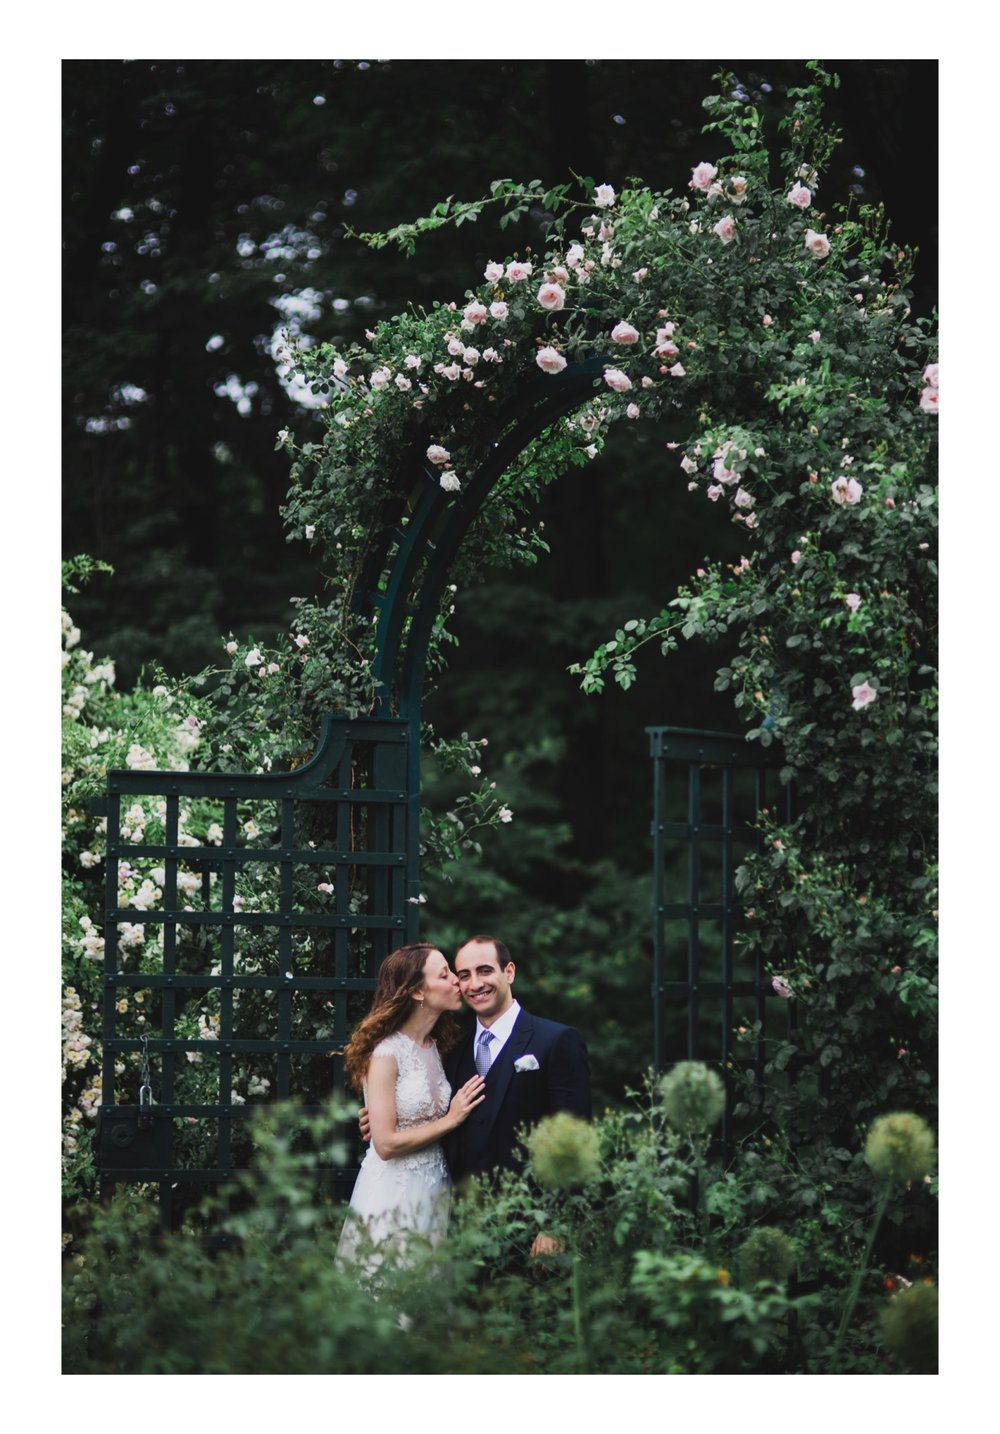 New York Wedding Photographer, Brooklyn Wedding Photography, Upstate Wedding Photography, New York Botanic Garden Wedding, NYBG wedding